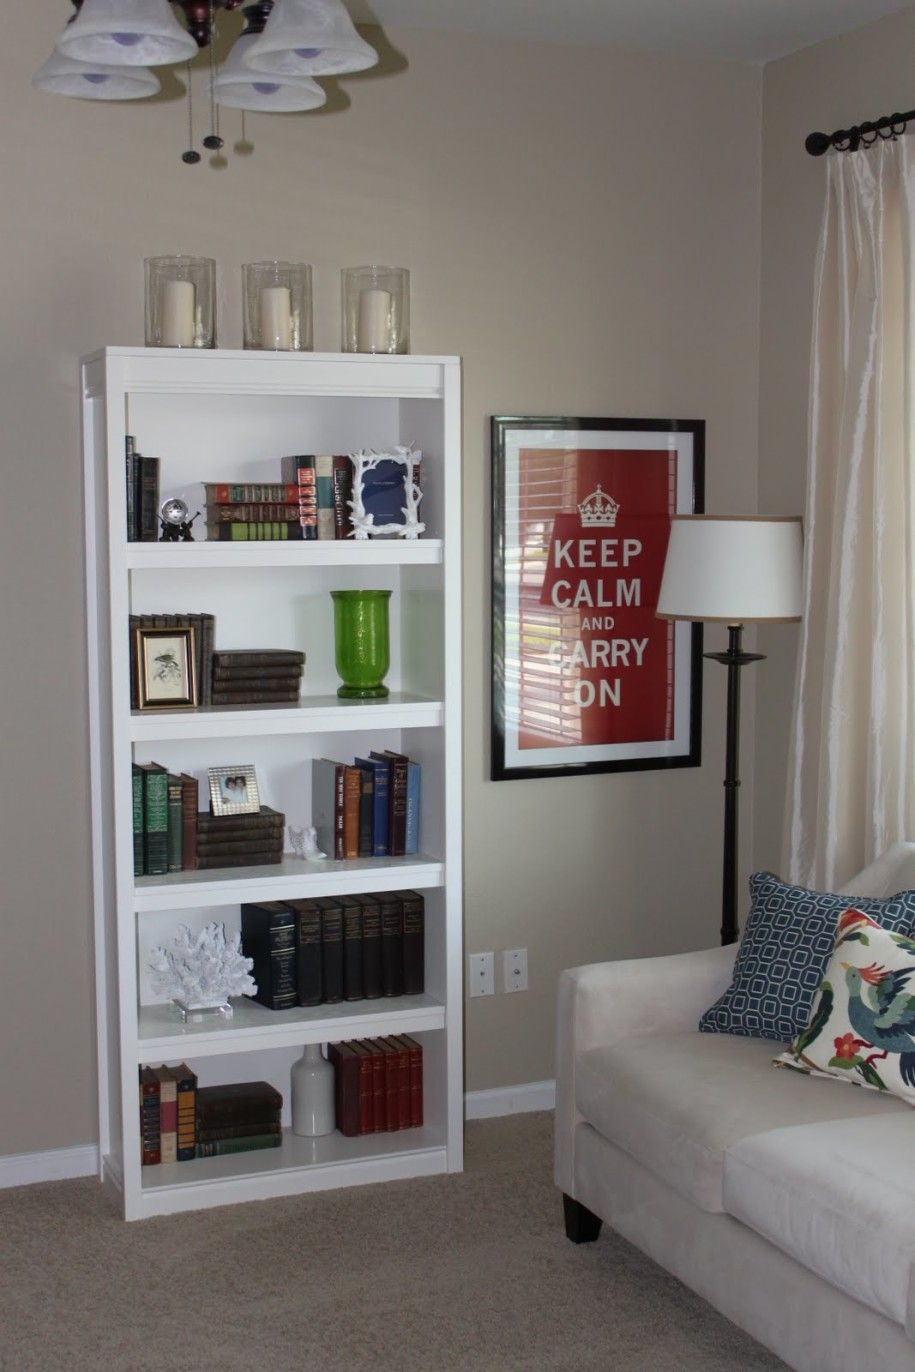 Simple Homemade Bookshelves Concept For Reading Room Tiny White Bookcase In Living Room Simple H Bookshelves In Living Room Bookshelf Decor Shelves In Bedroom